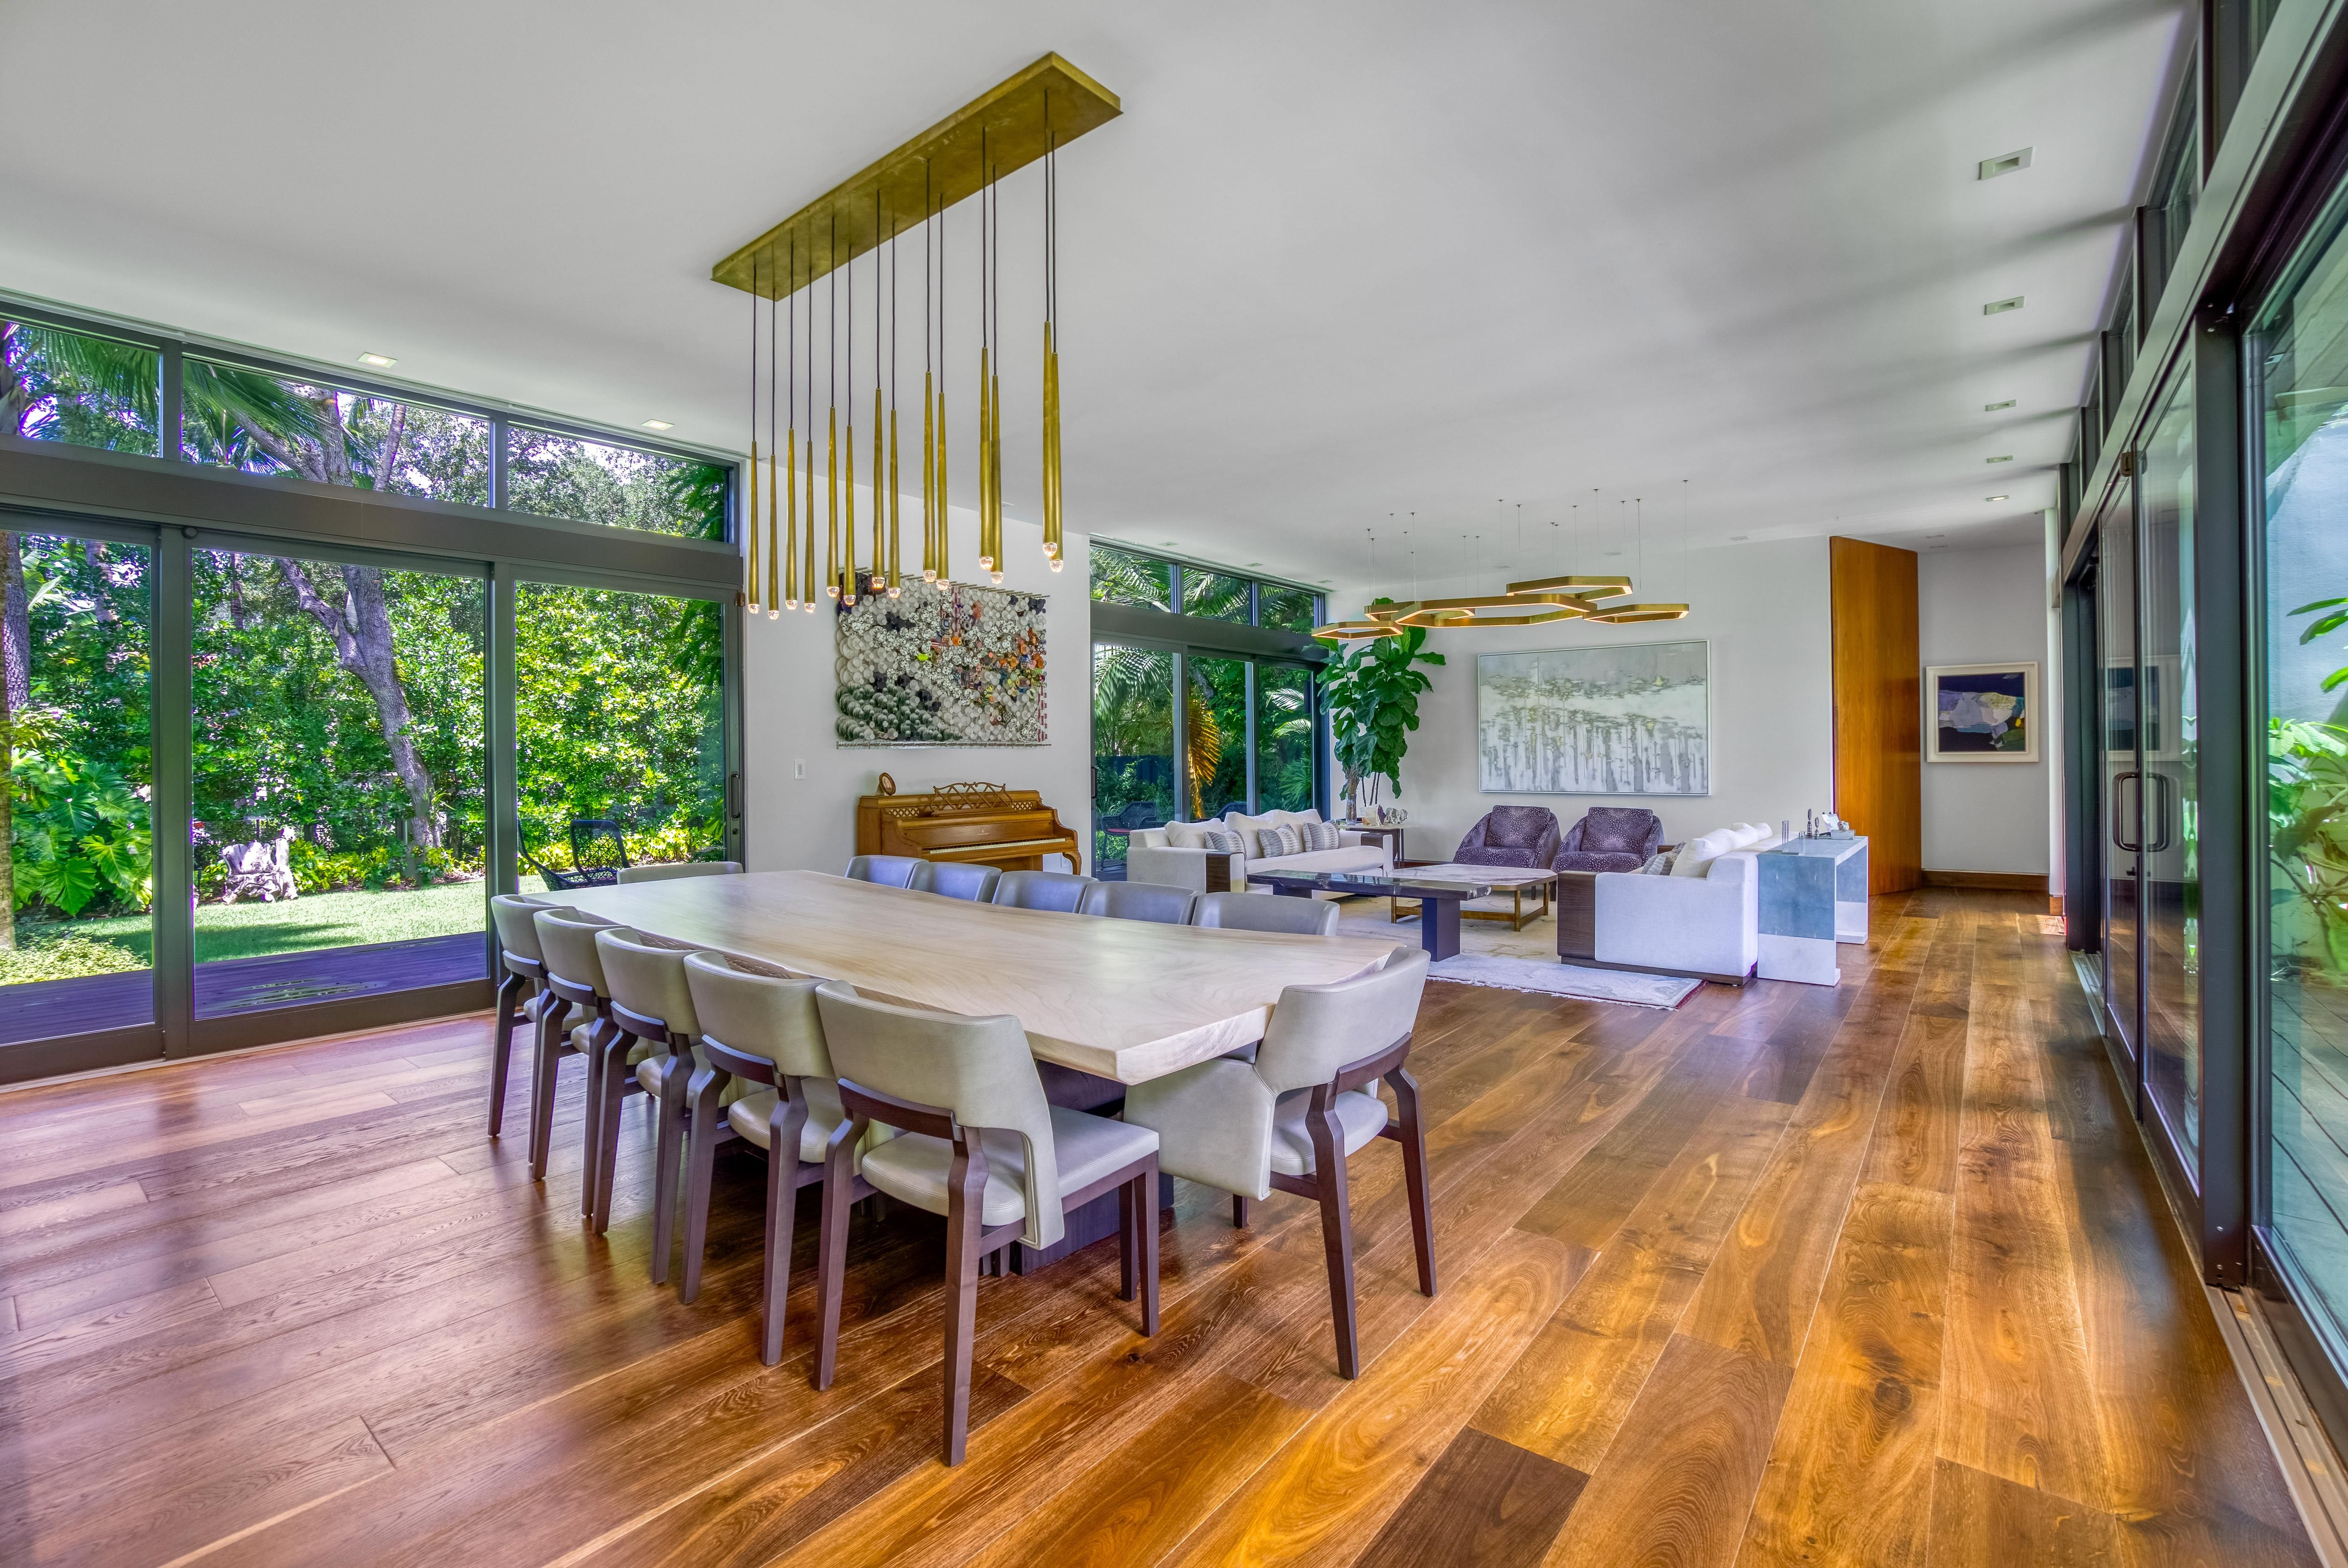 Open space with floor to ceiling windows and hardwood